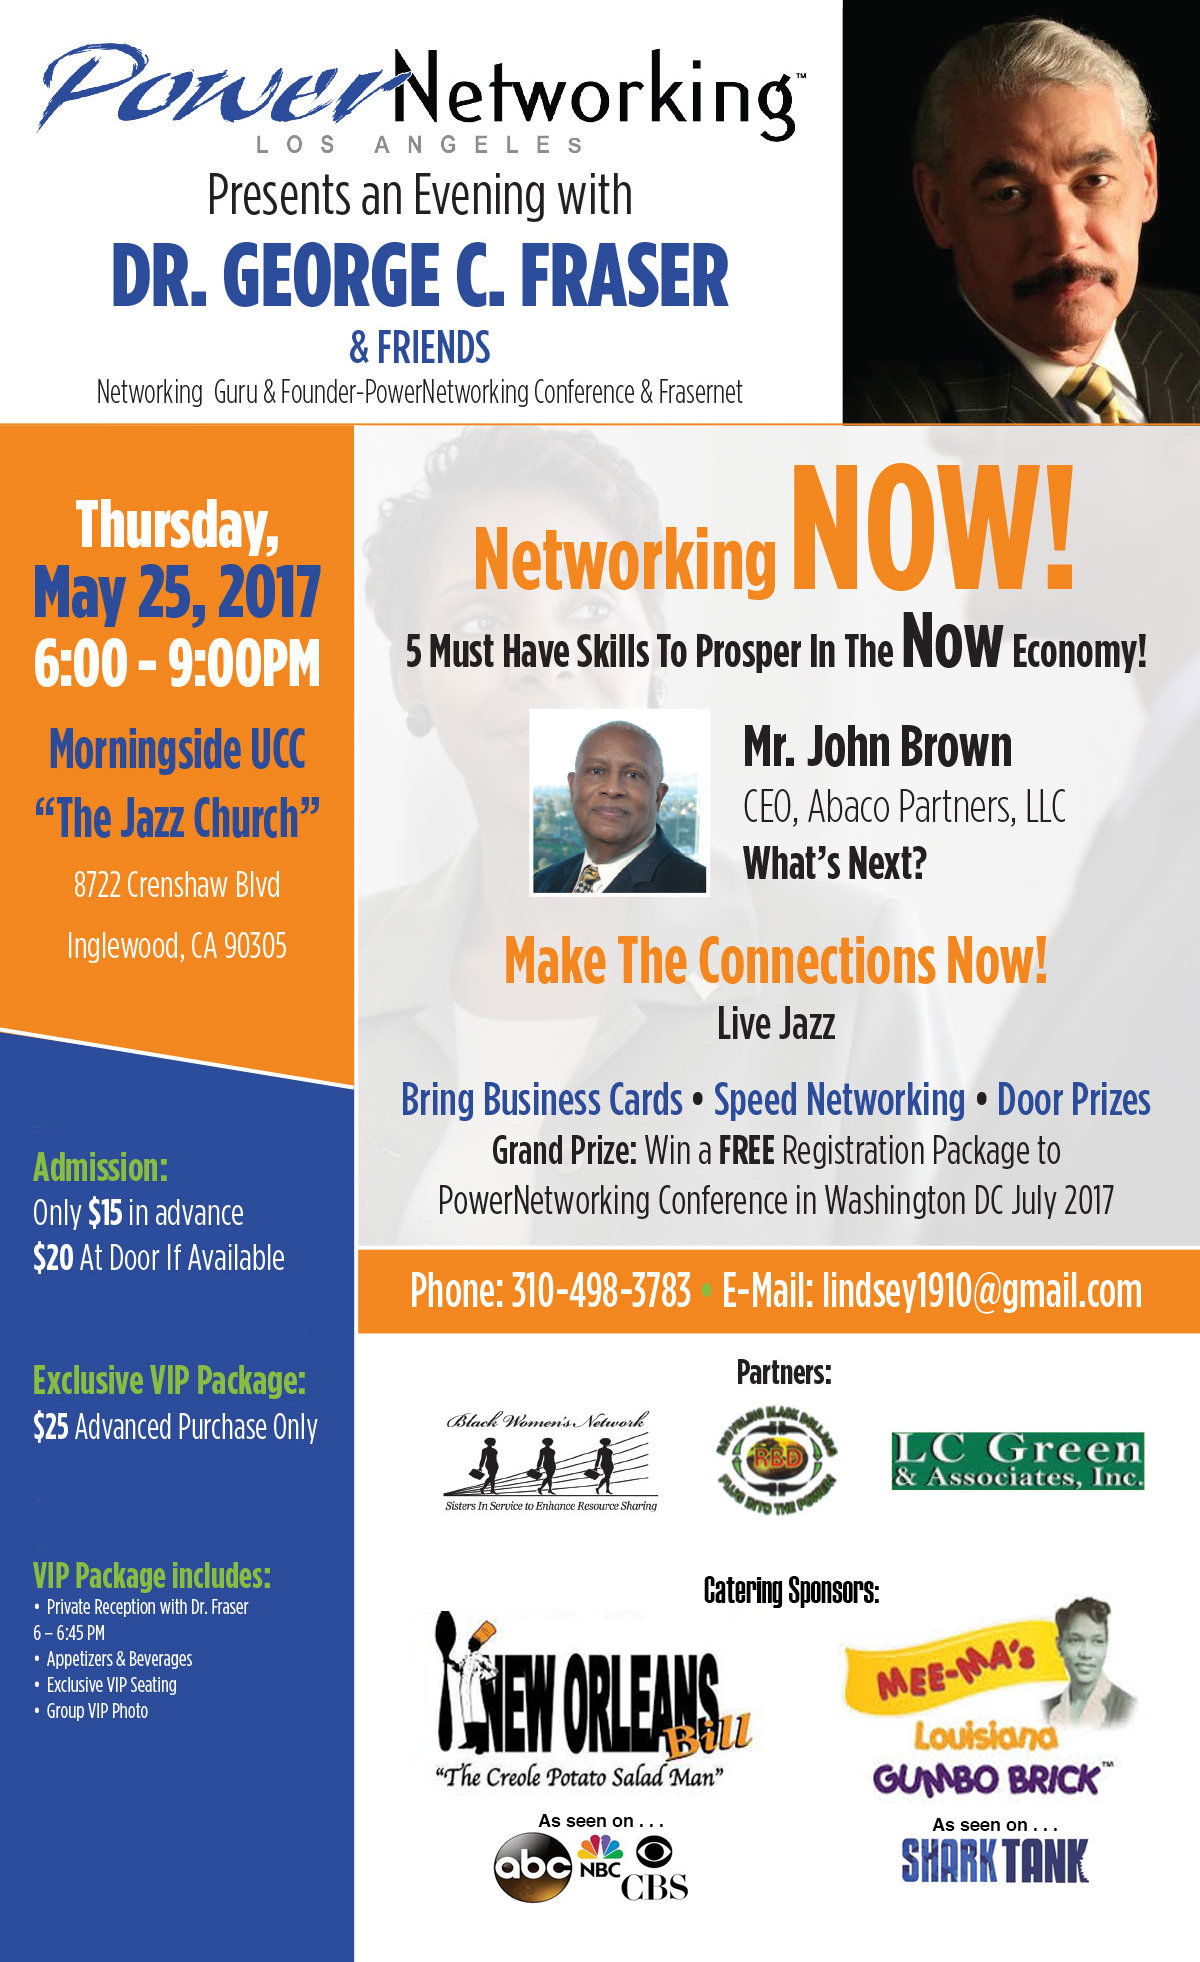 MAY 25 :: Power Networking Los Angeles presents An Evening with Dr. George C. Fraser & Friends